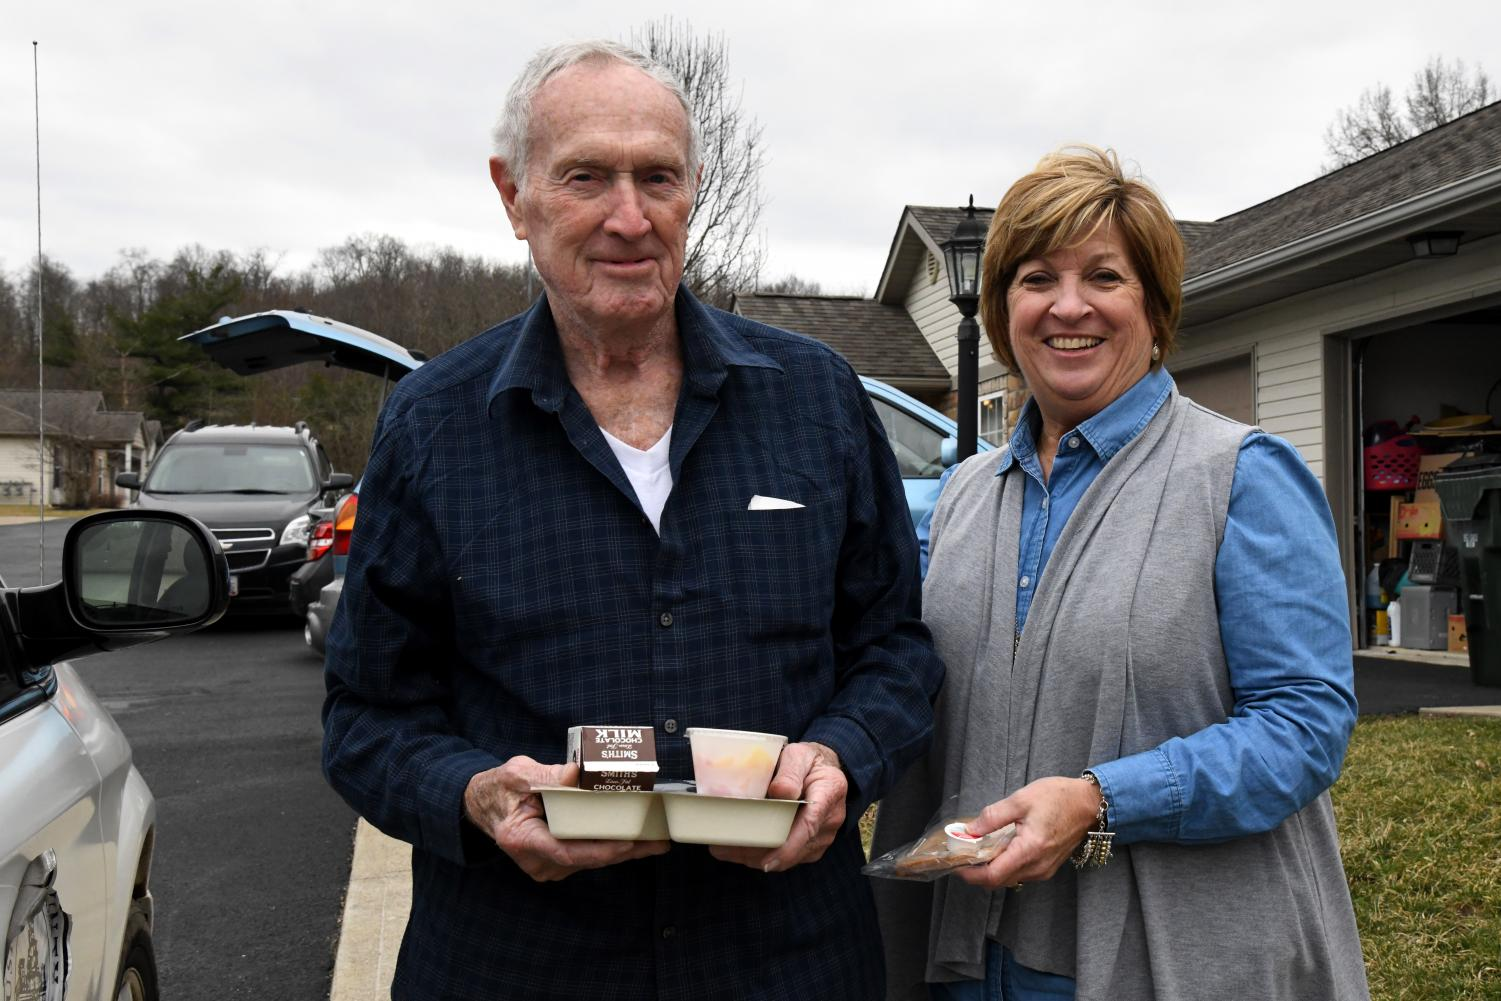 Muskingum County Commissioner Cindy Cameron (right) gives senior citizen William Hill (left) his daily meal during Friday's March for Meals initiative.